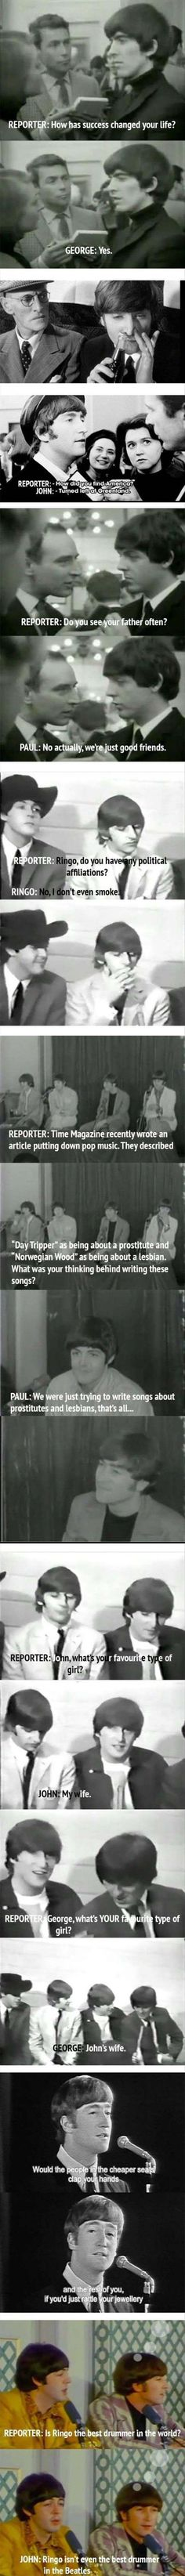 The Beatles Were Masters At Answering Interview Questions 20 Pics